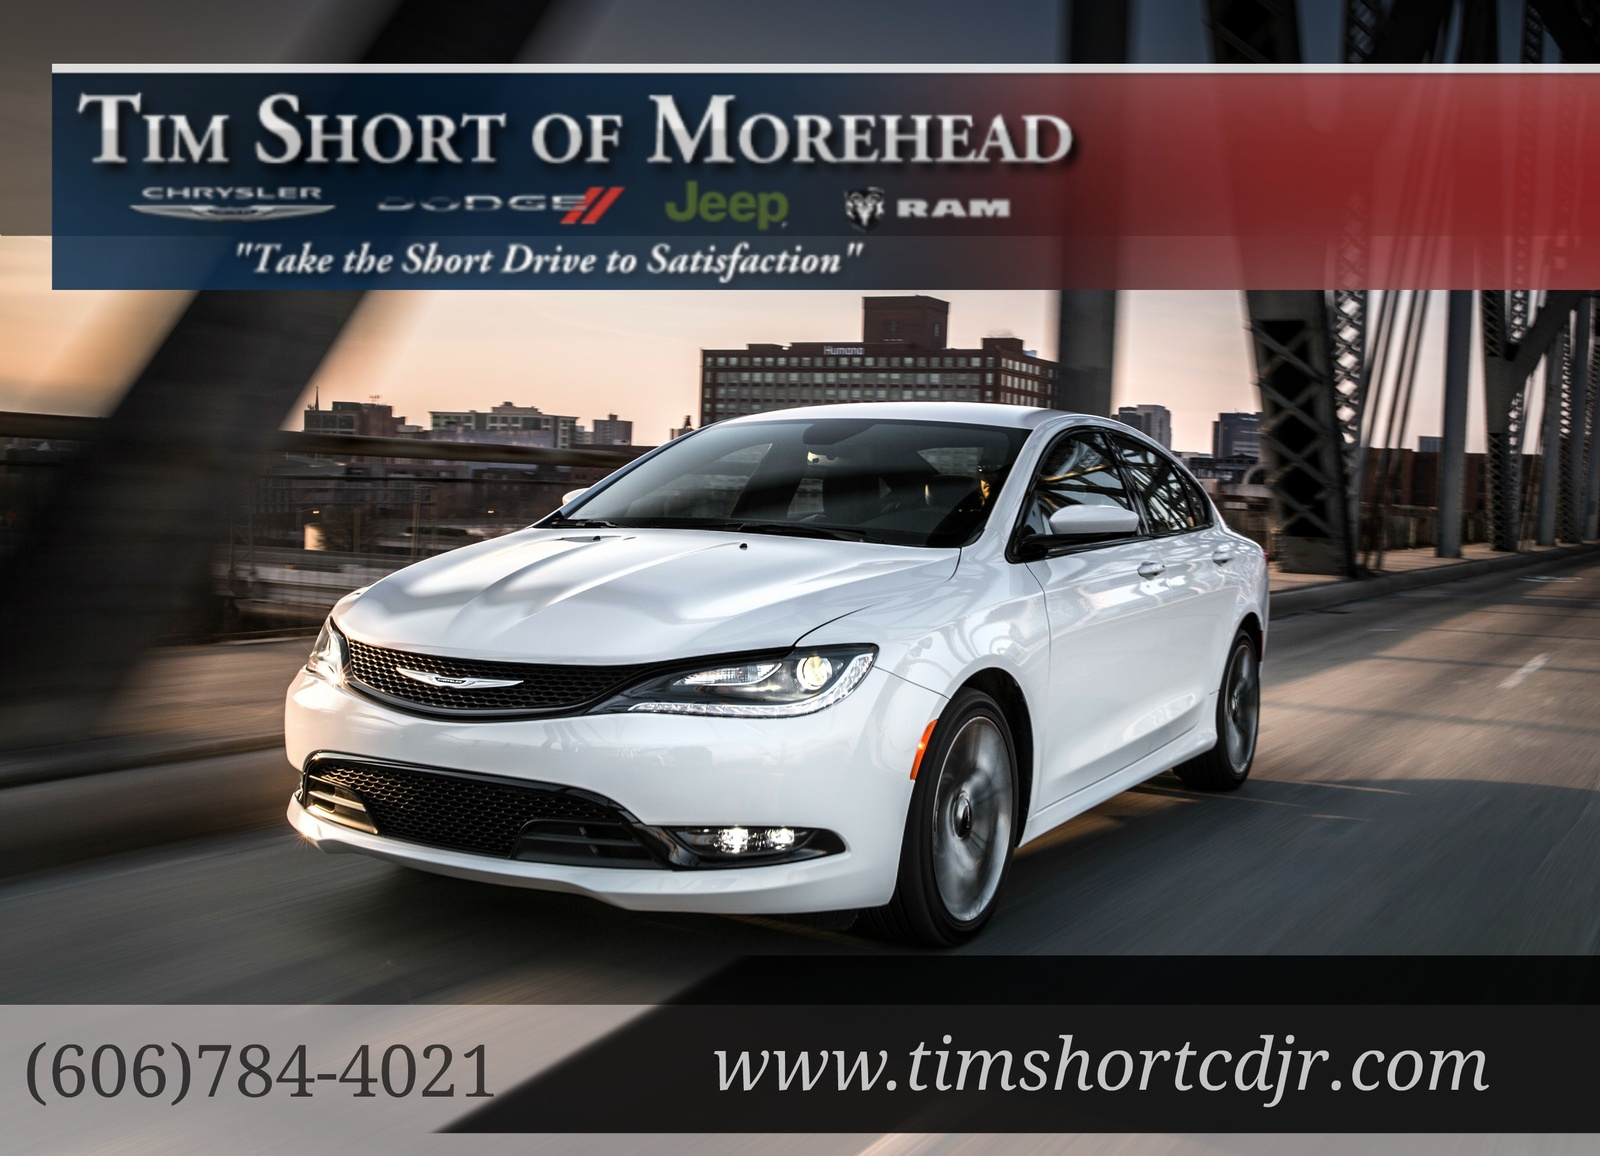 Tim Short Ford Used Cars